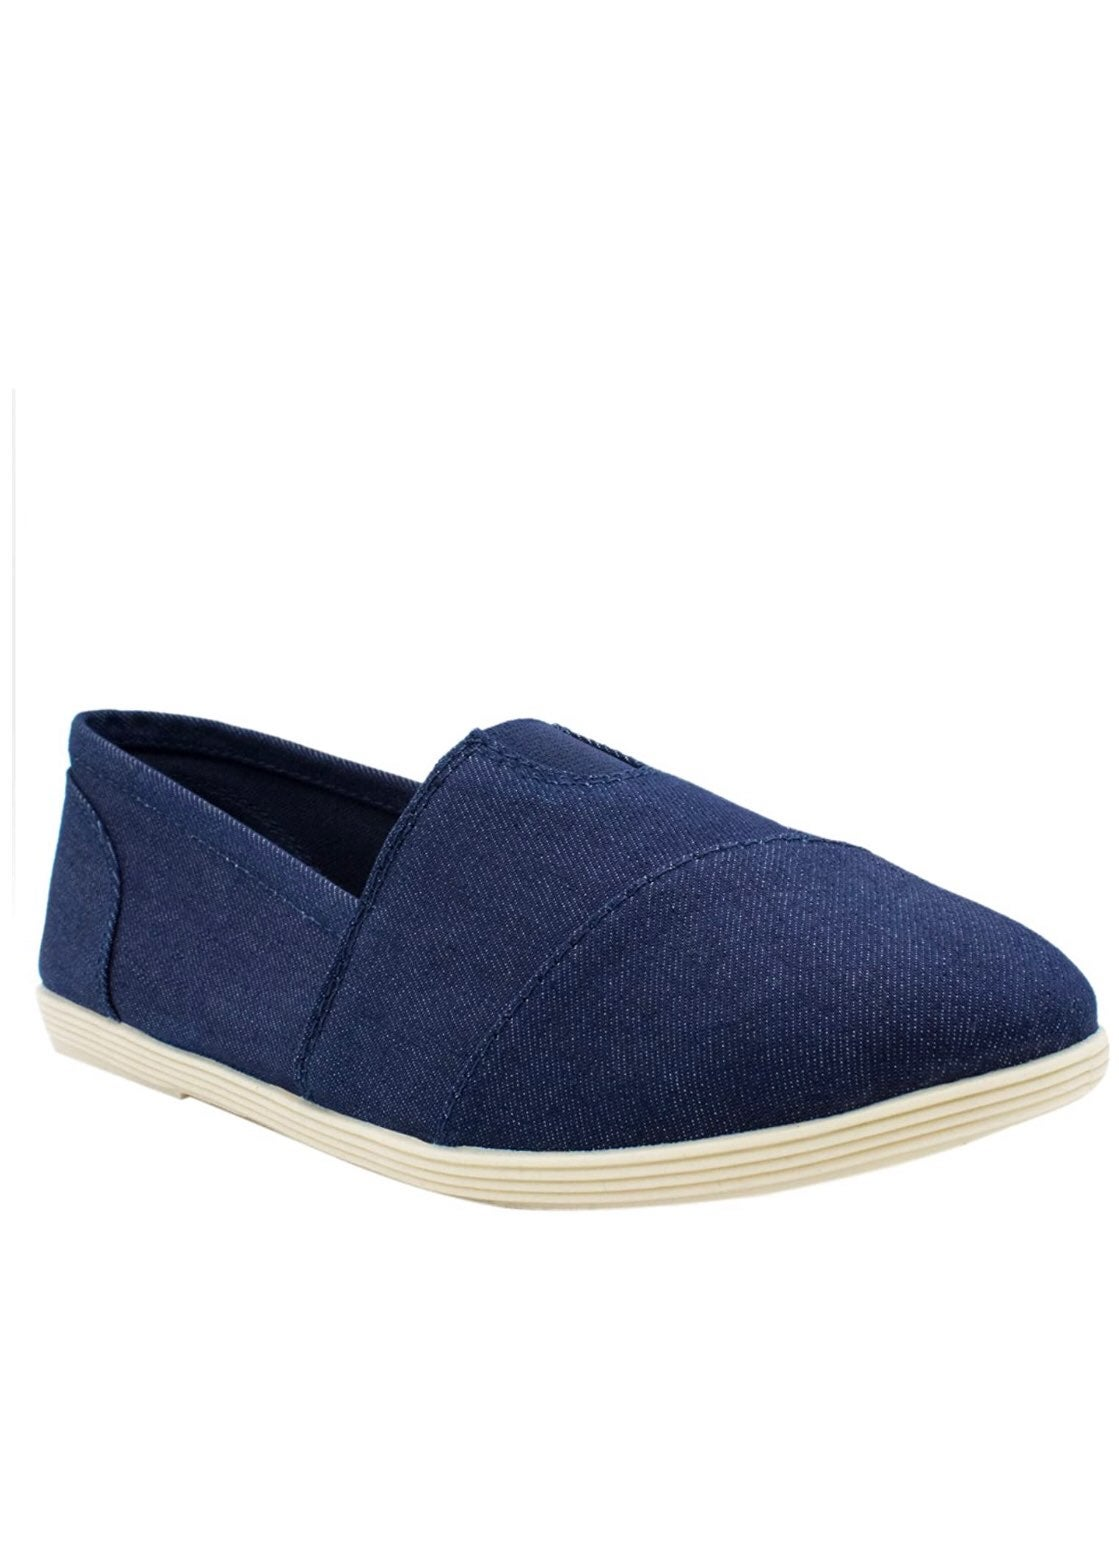 Women's Odell Flat with Cutouts size 7.5